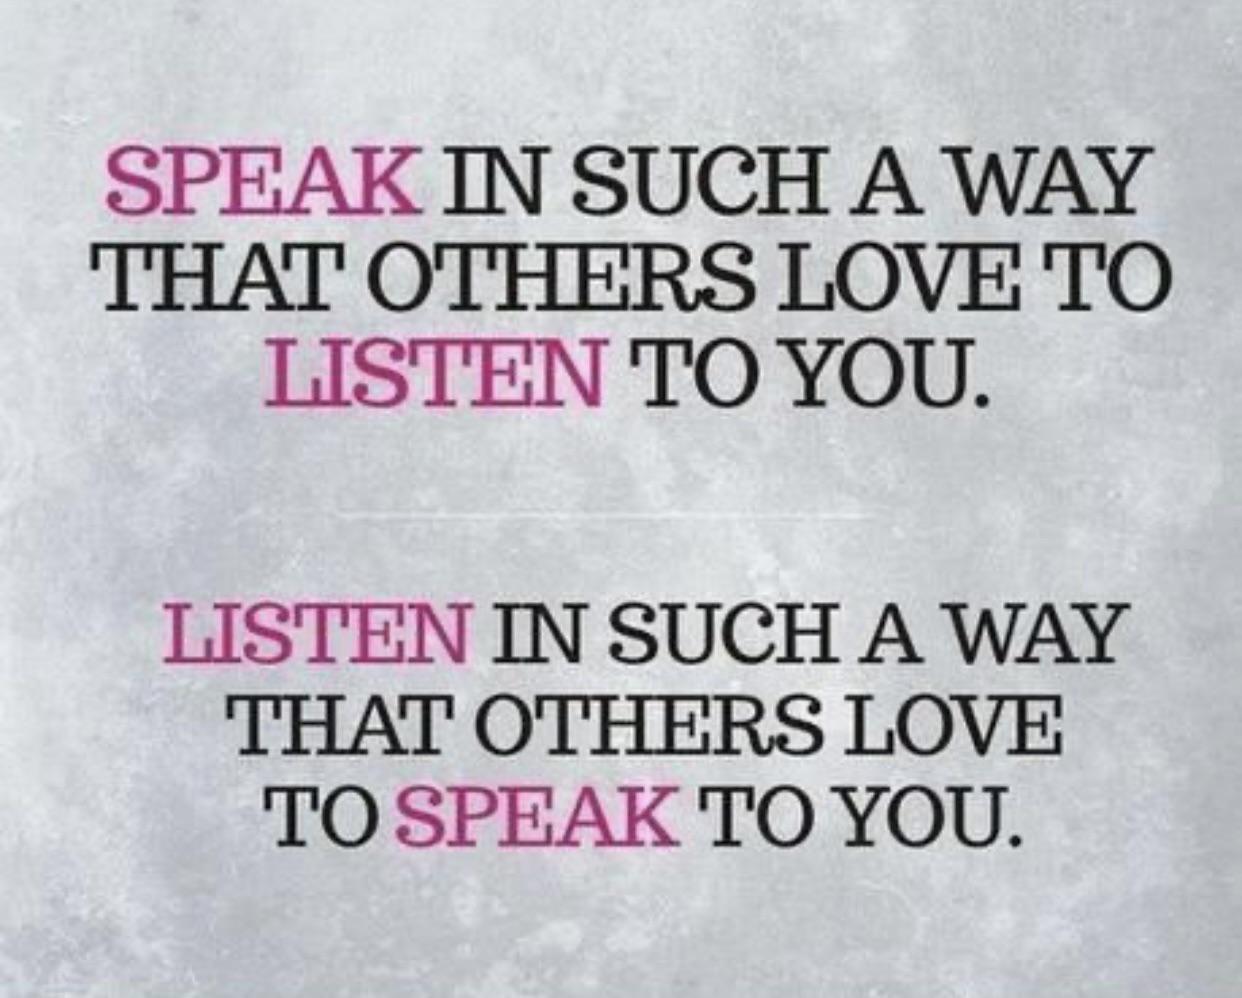 [Image] When you take the time to listen to someone, really take the time to listen properly; it shows you value the person, which is the ultimate form of respect.